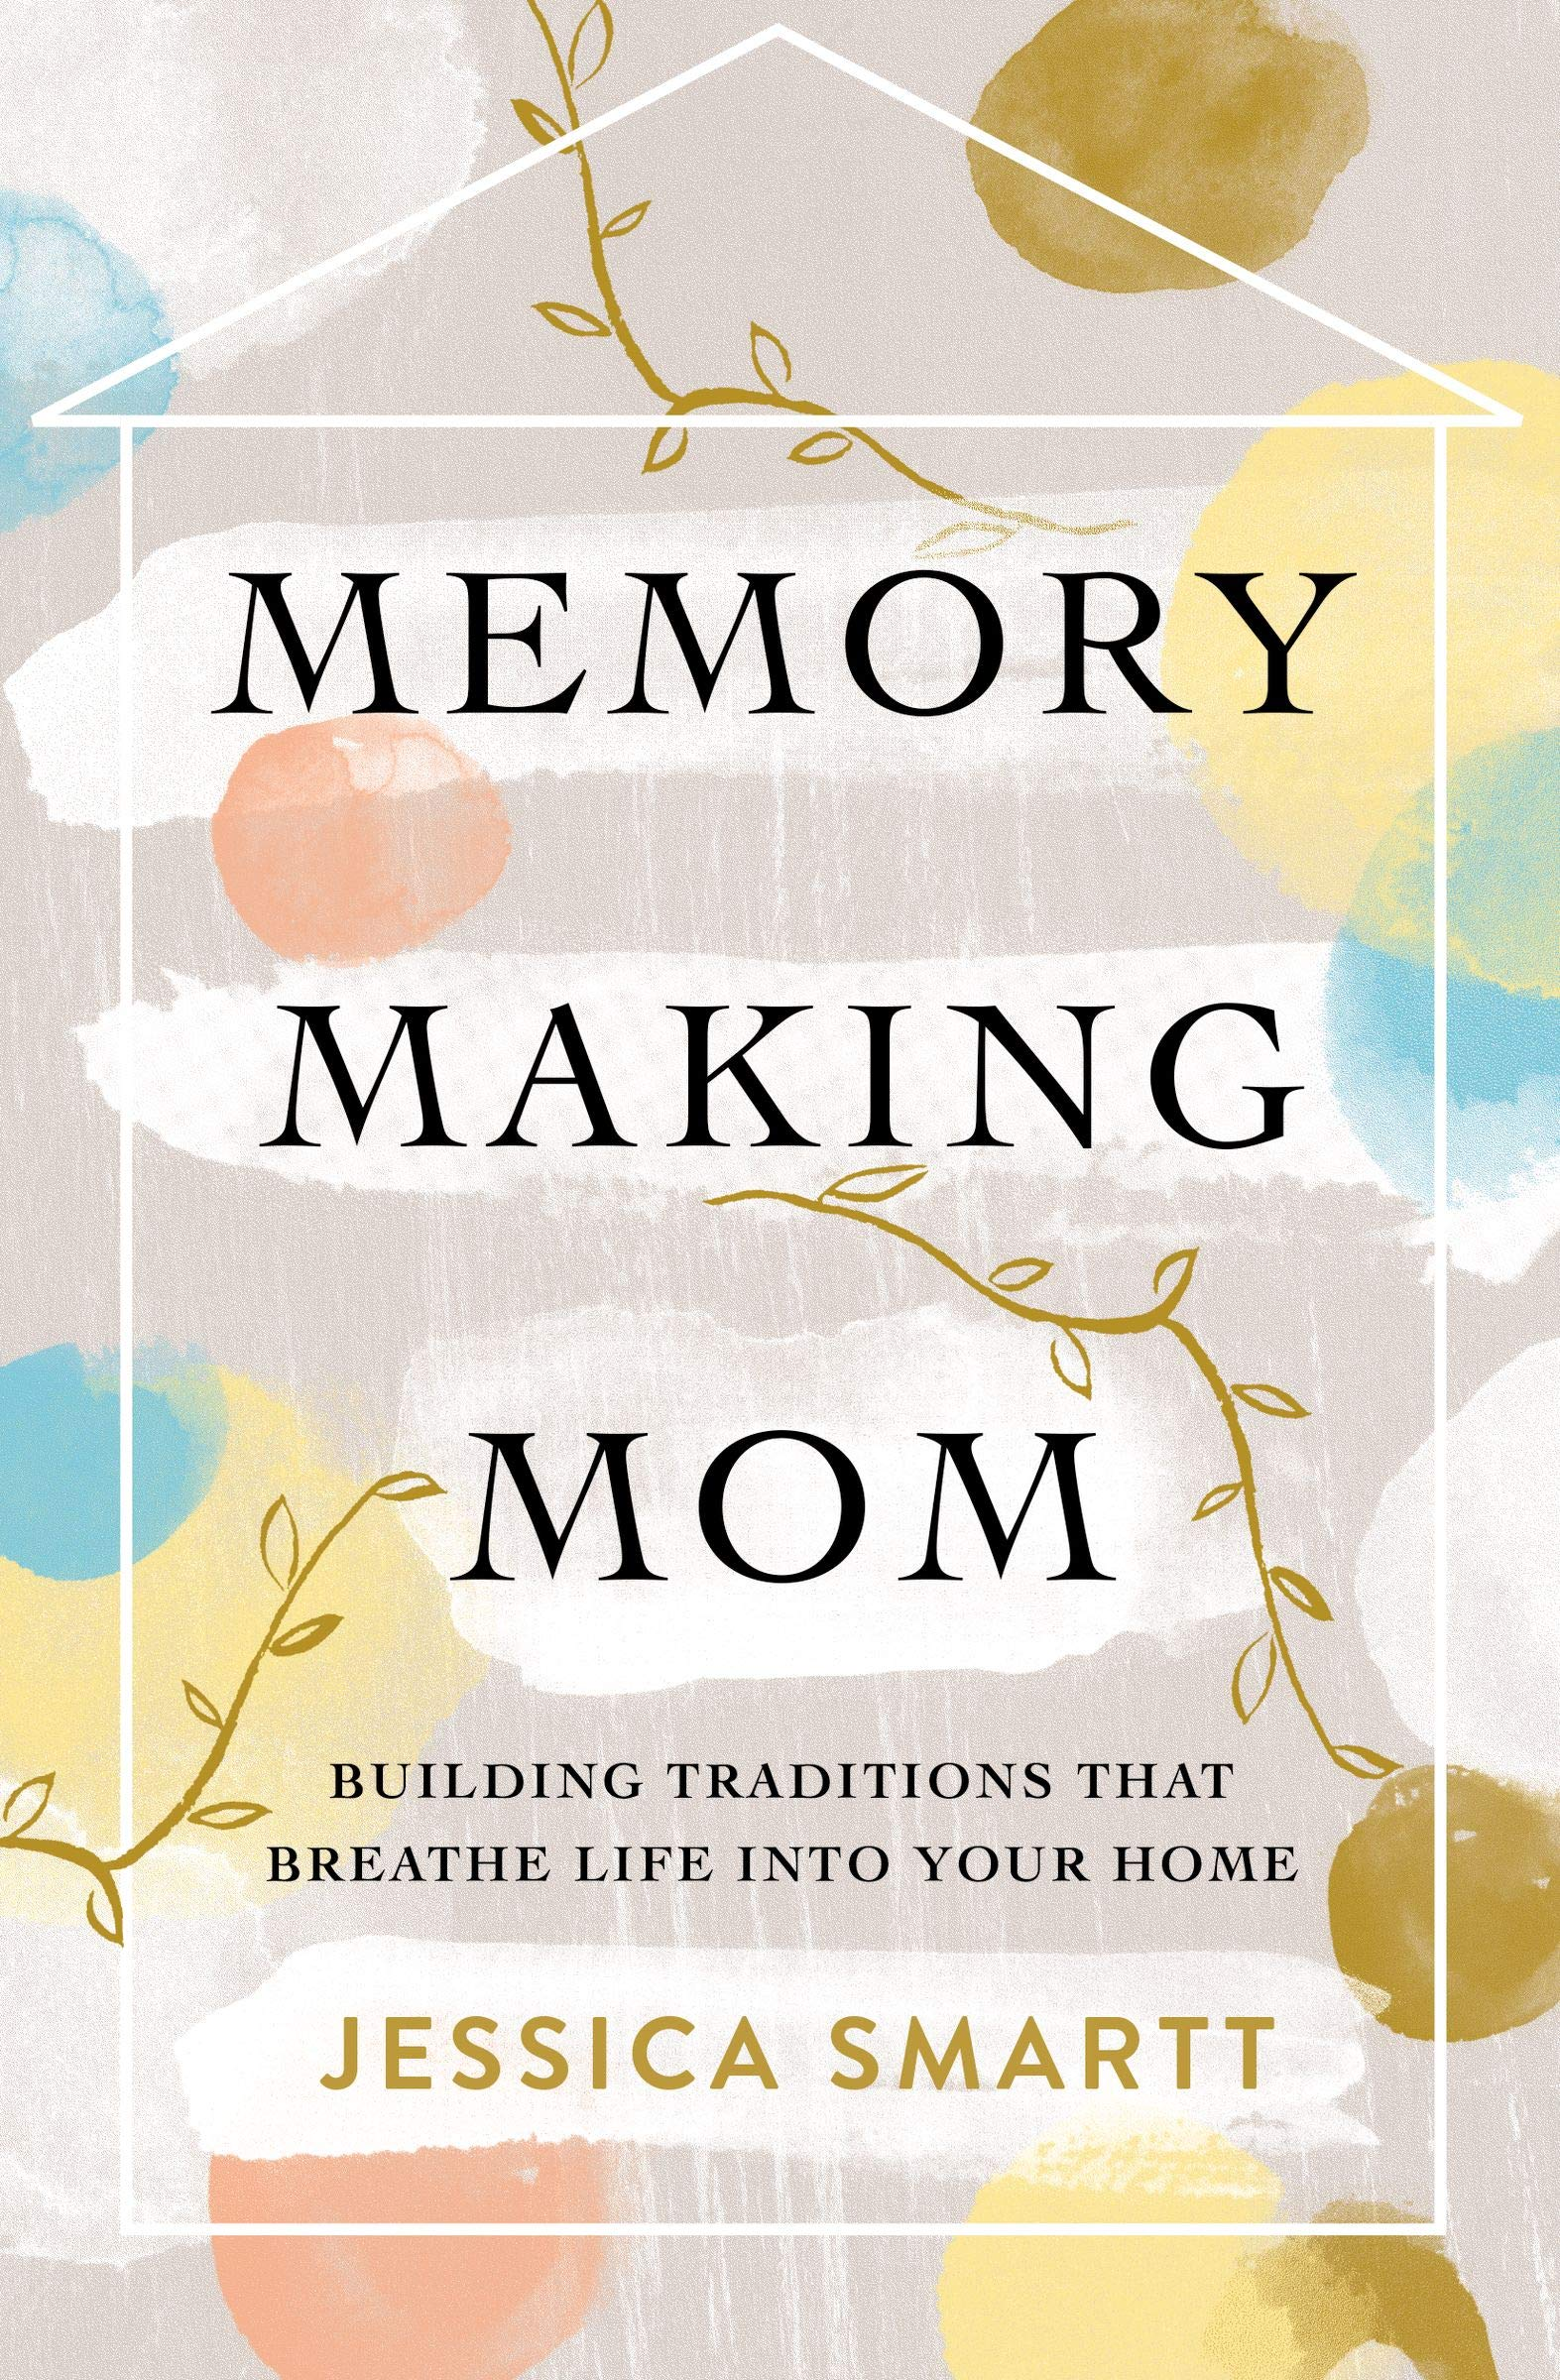 Memory Making Mom by Jessica Smartt